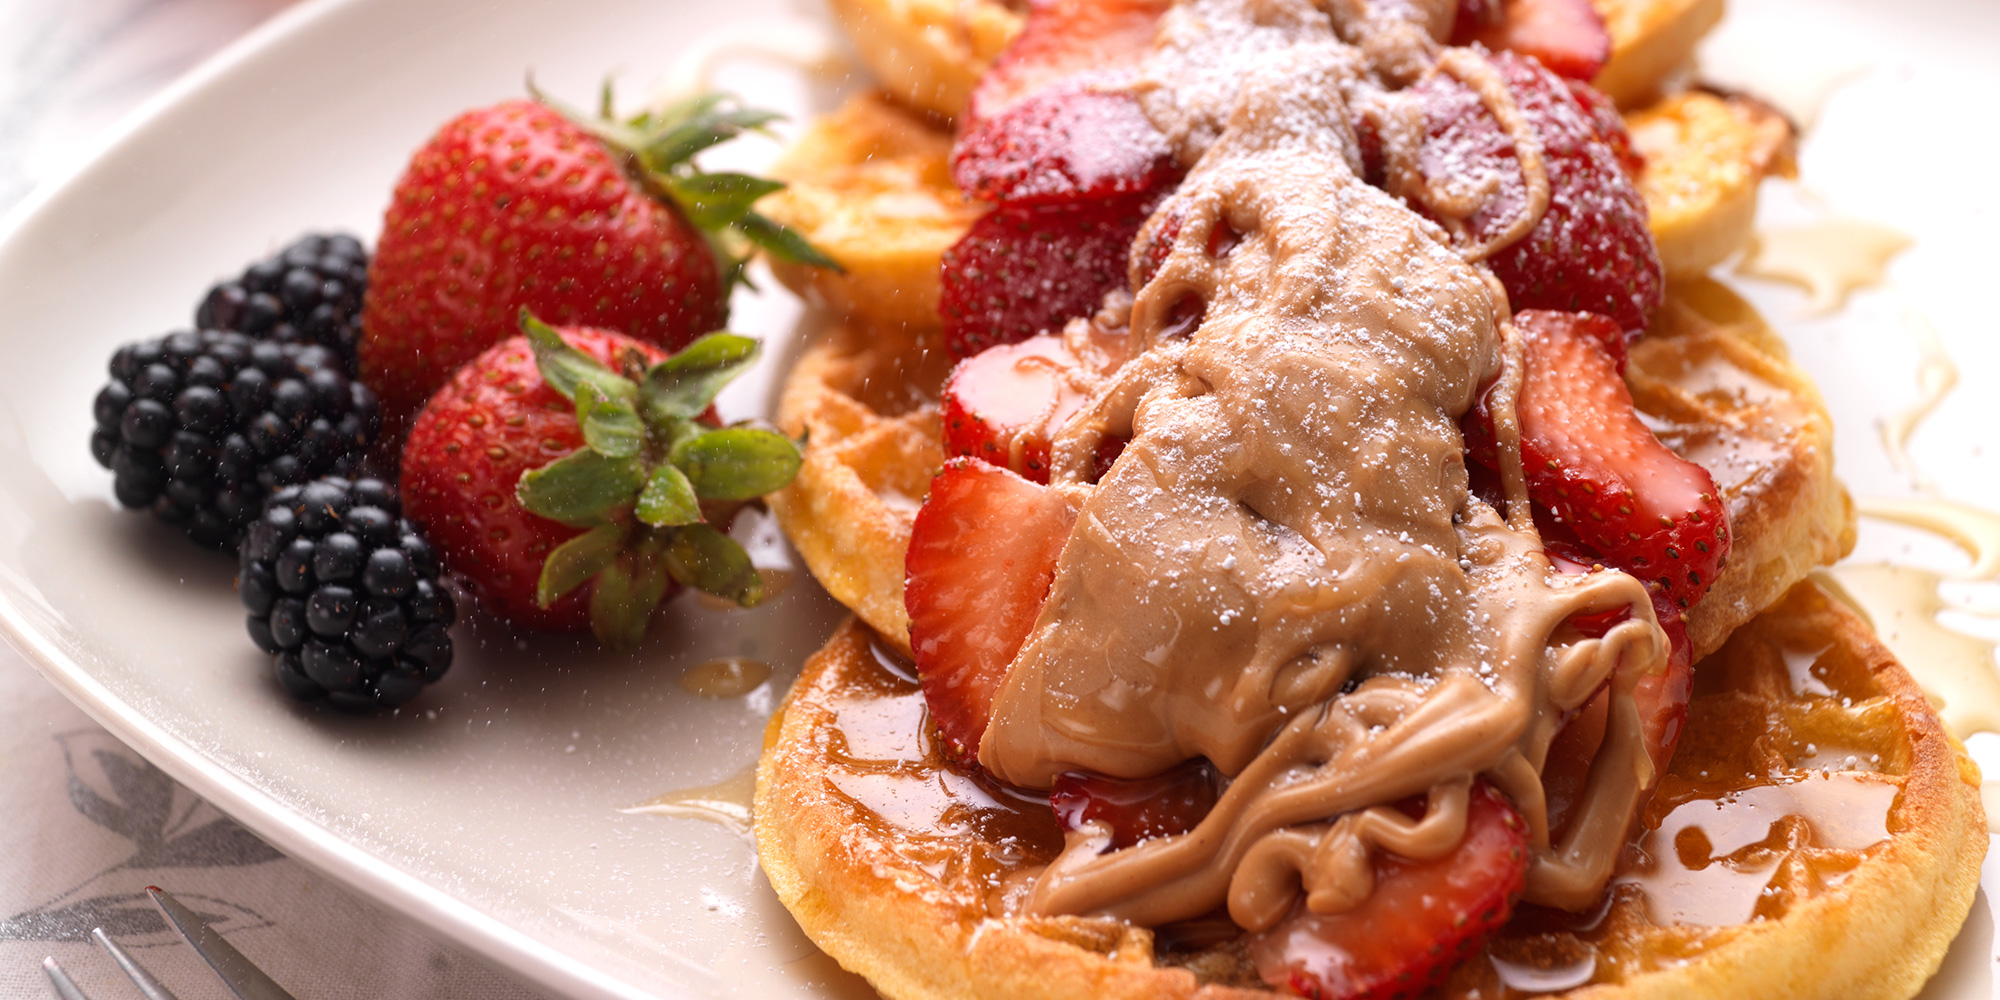 Waffle with Peanut Butter and Strawberr